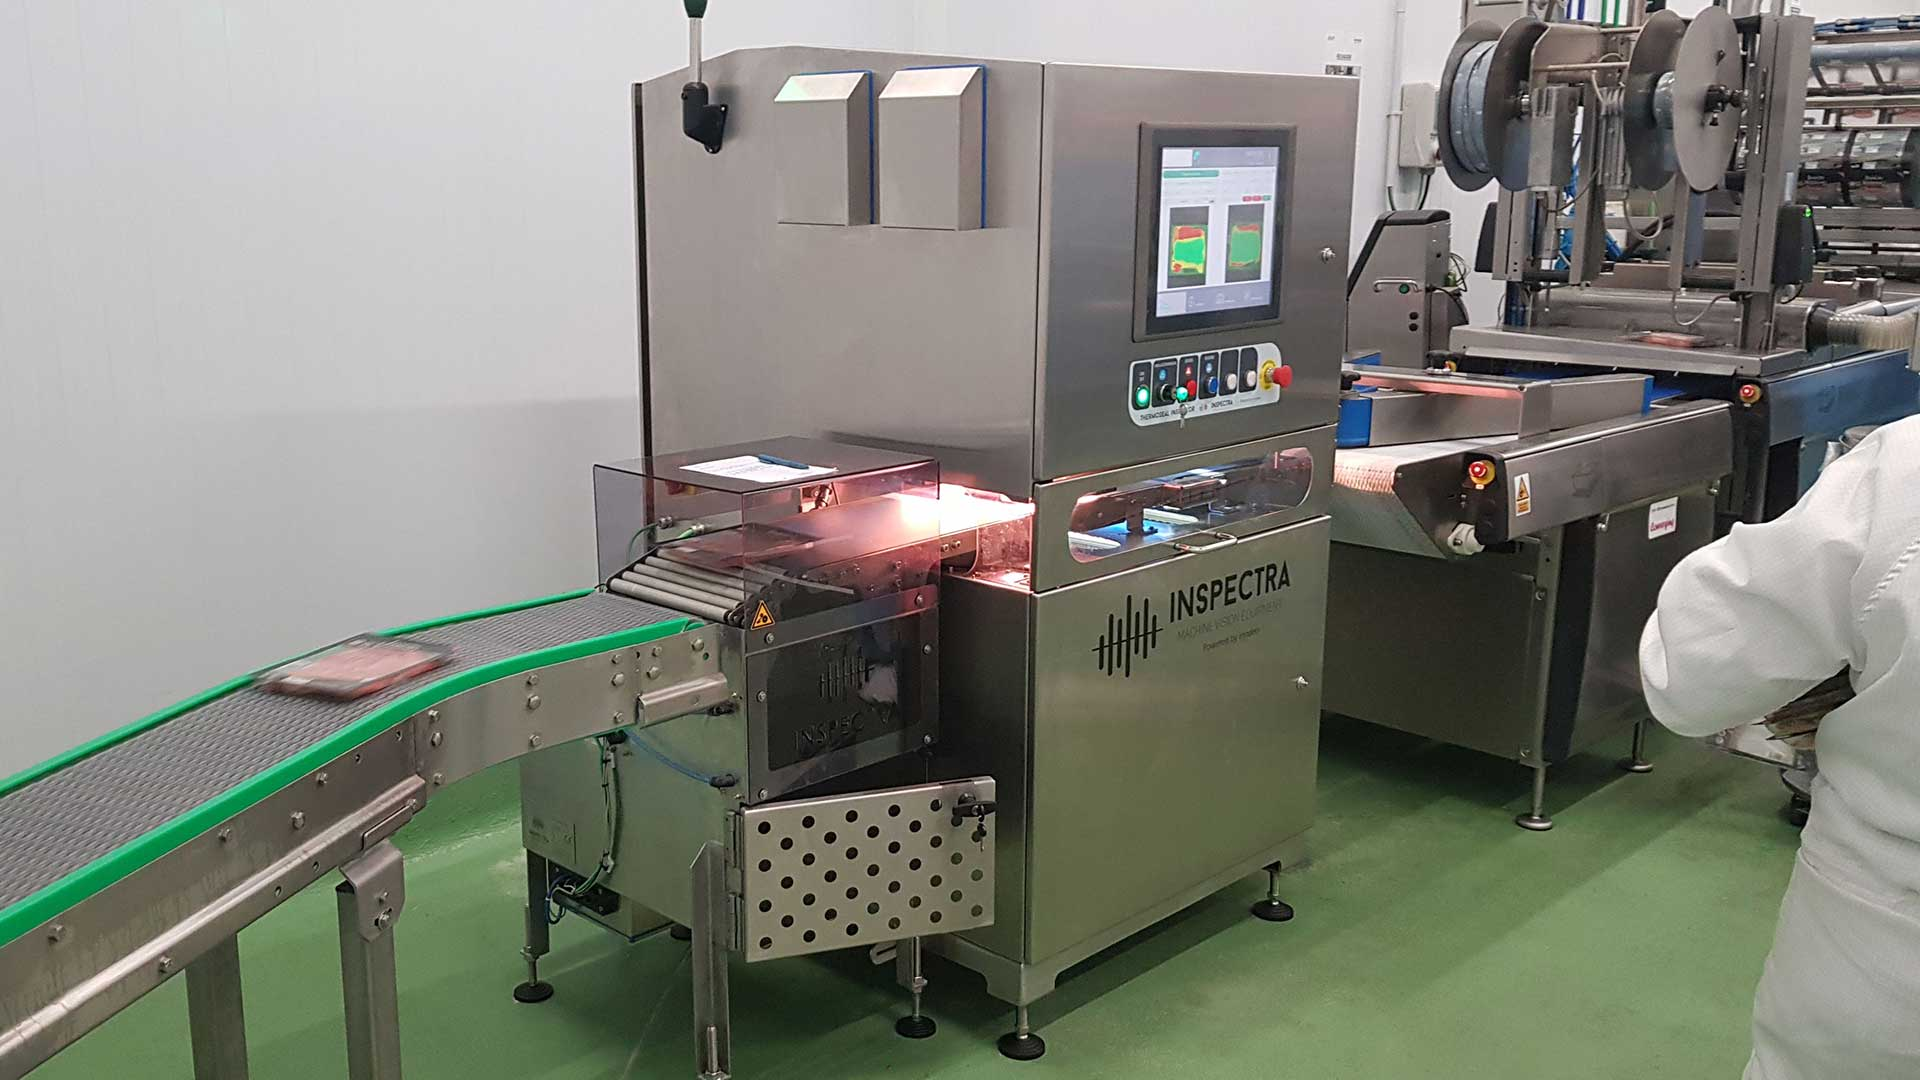 Inspectra machine inspecting food package with Specim FX17 camera